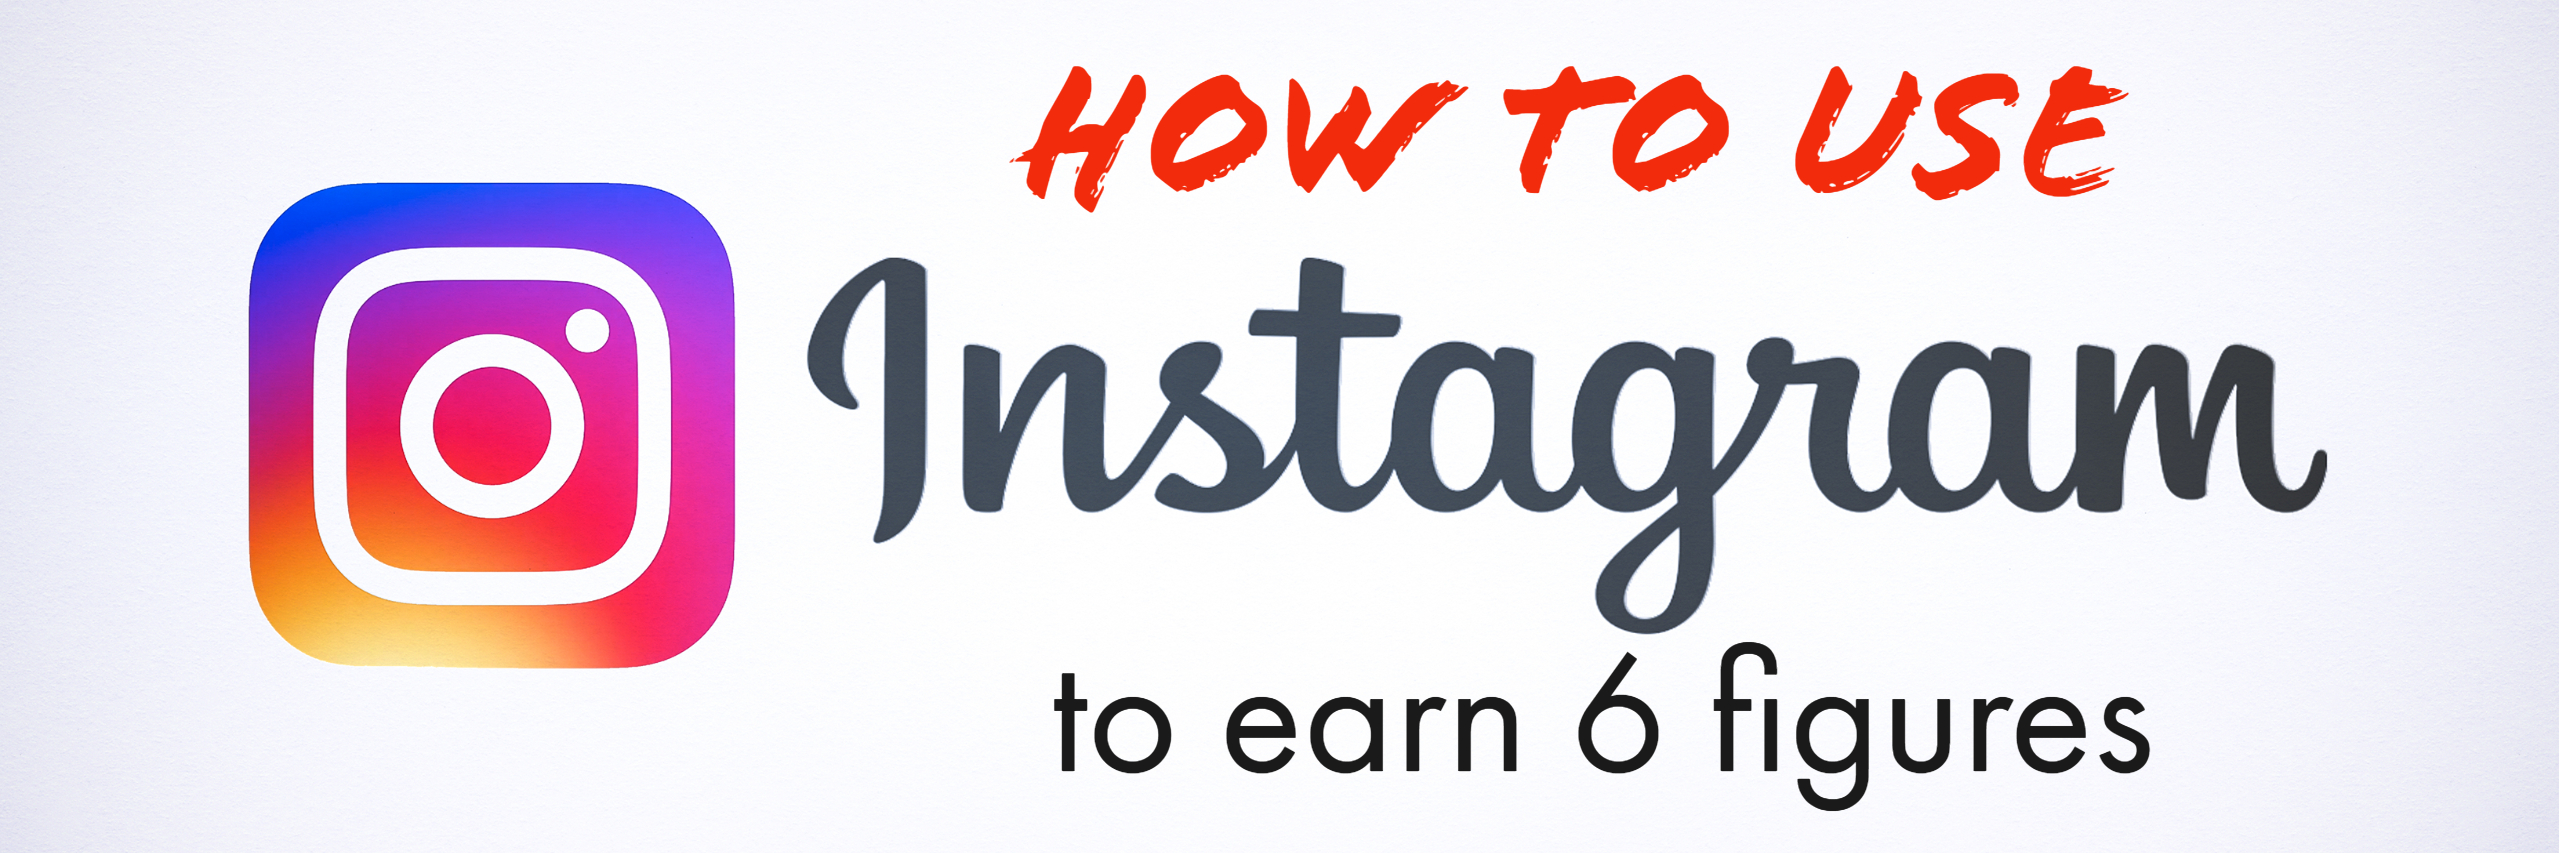 How to use Instagram to Earn 6 figures Best Real Estate Agent in Los Angeles Best Realtor in LA Celebrity Real Estate Agent Luxury Real Estate Agent